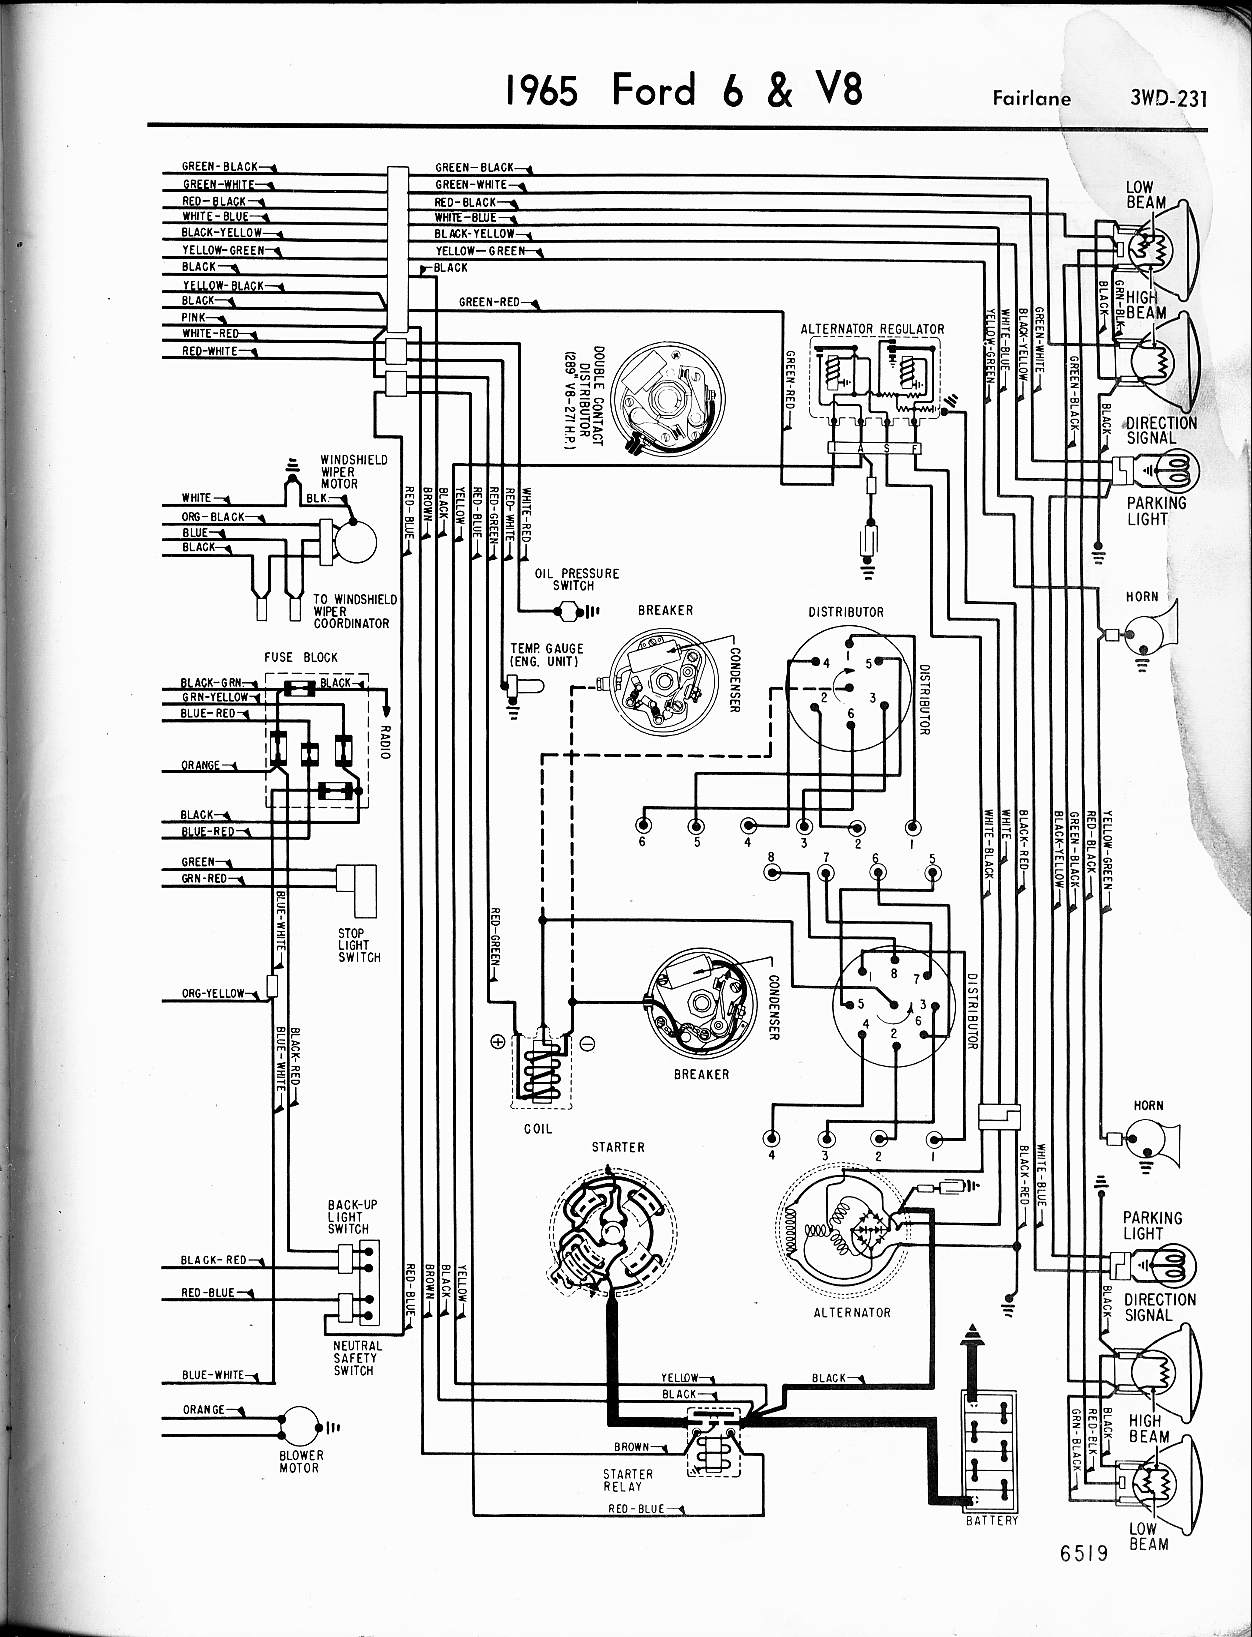 67 galaxie wiring diagram